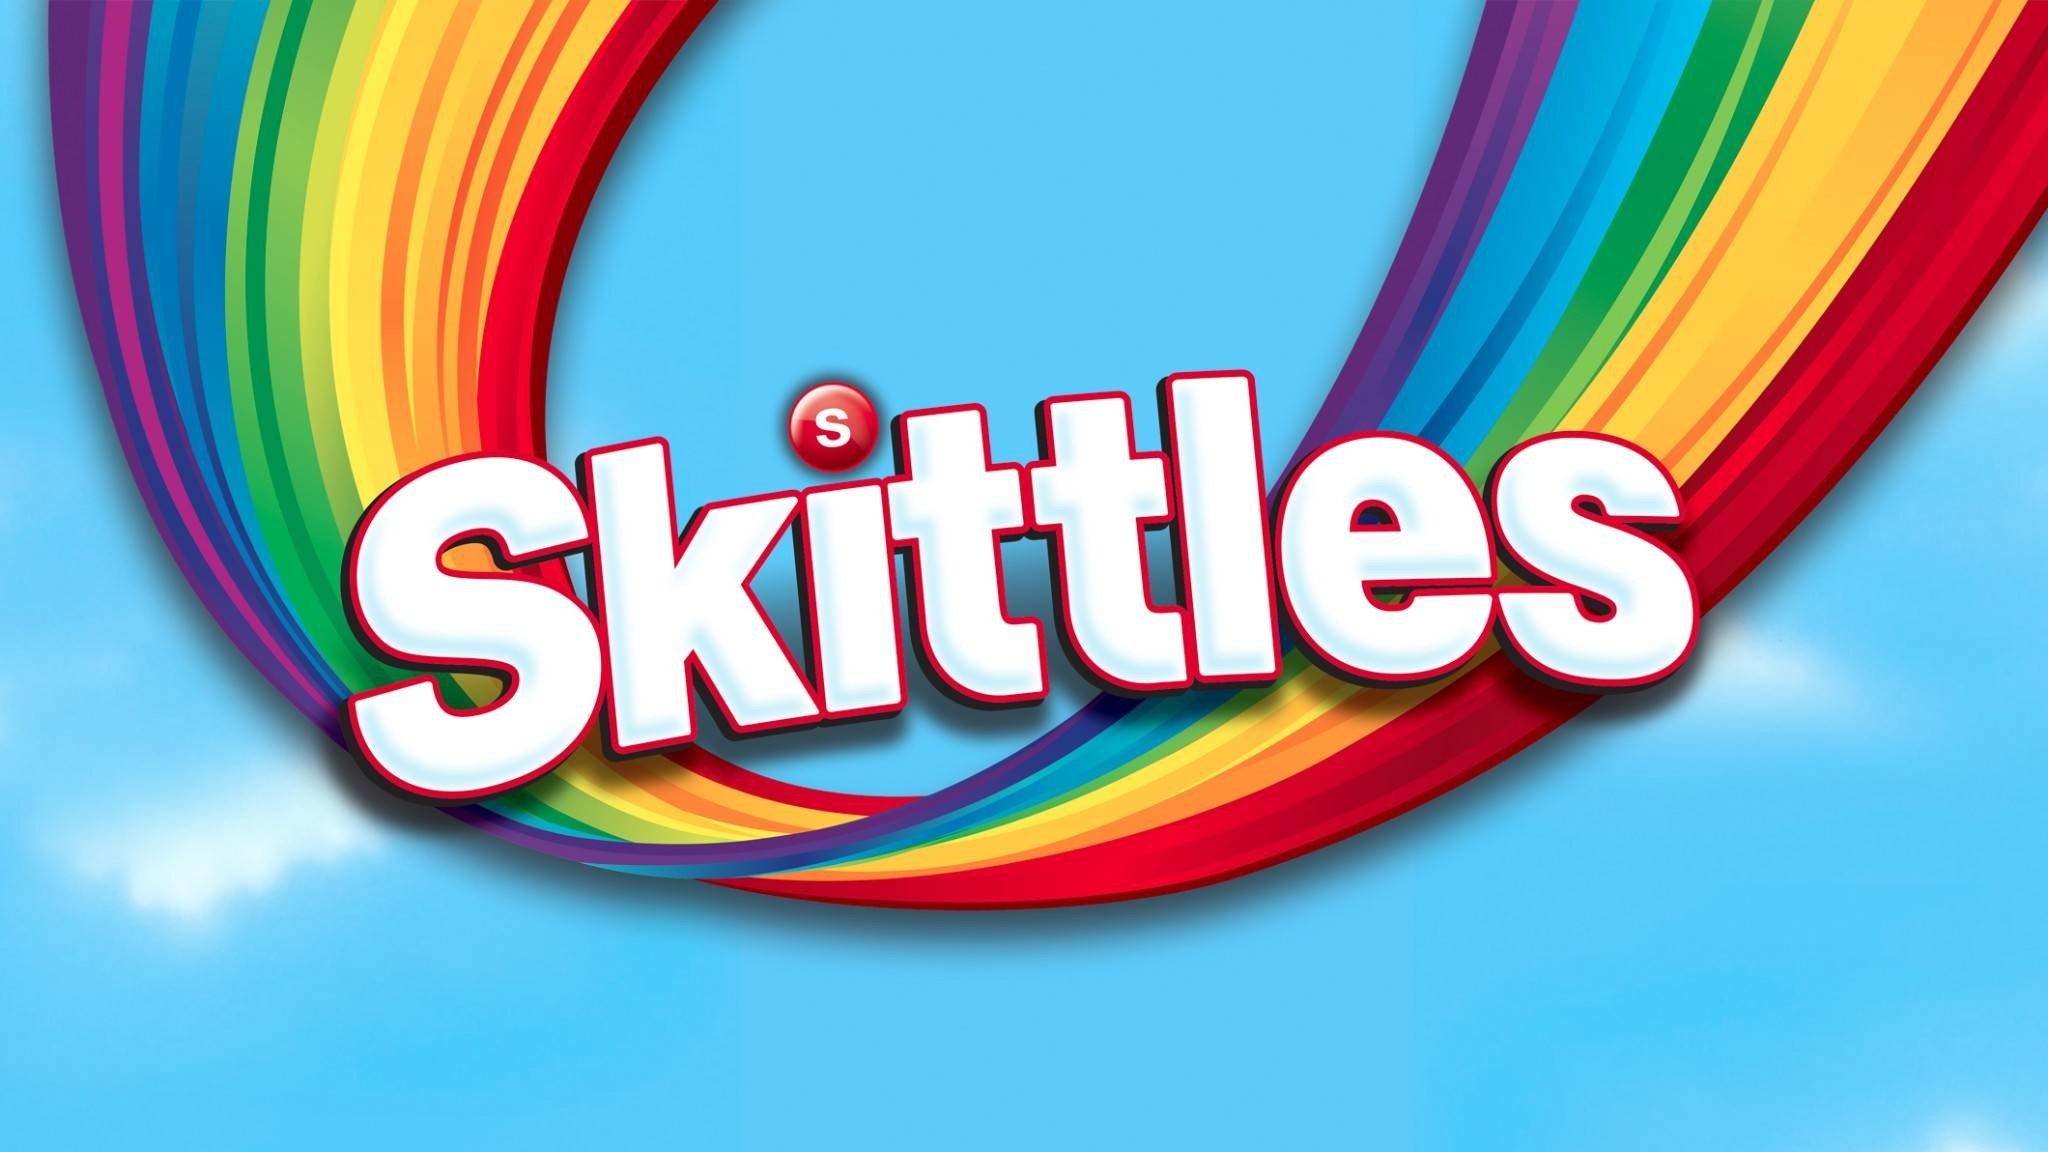 Res: 2048x1152, skittles - skittles Picture